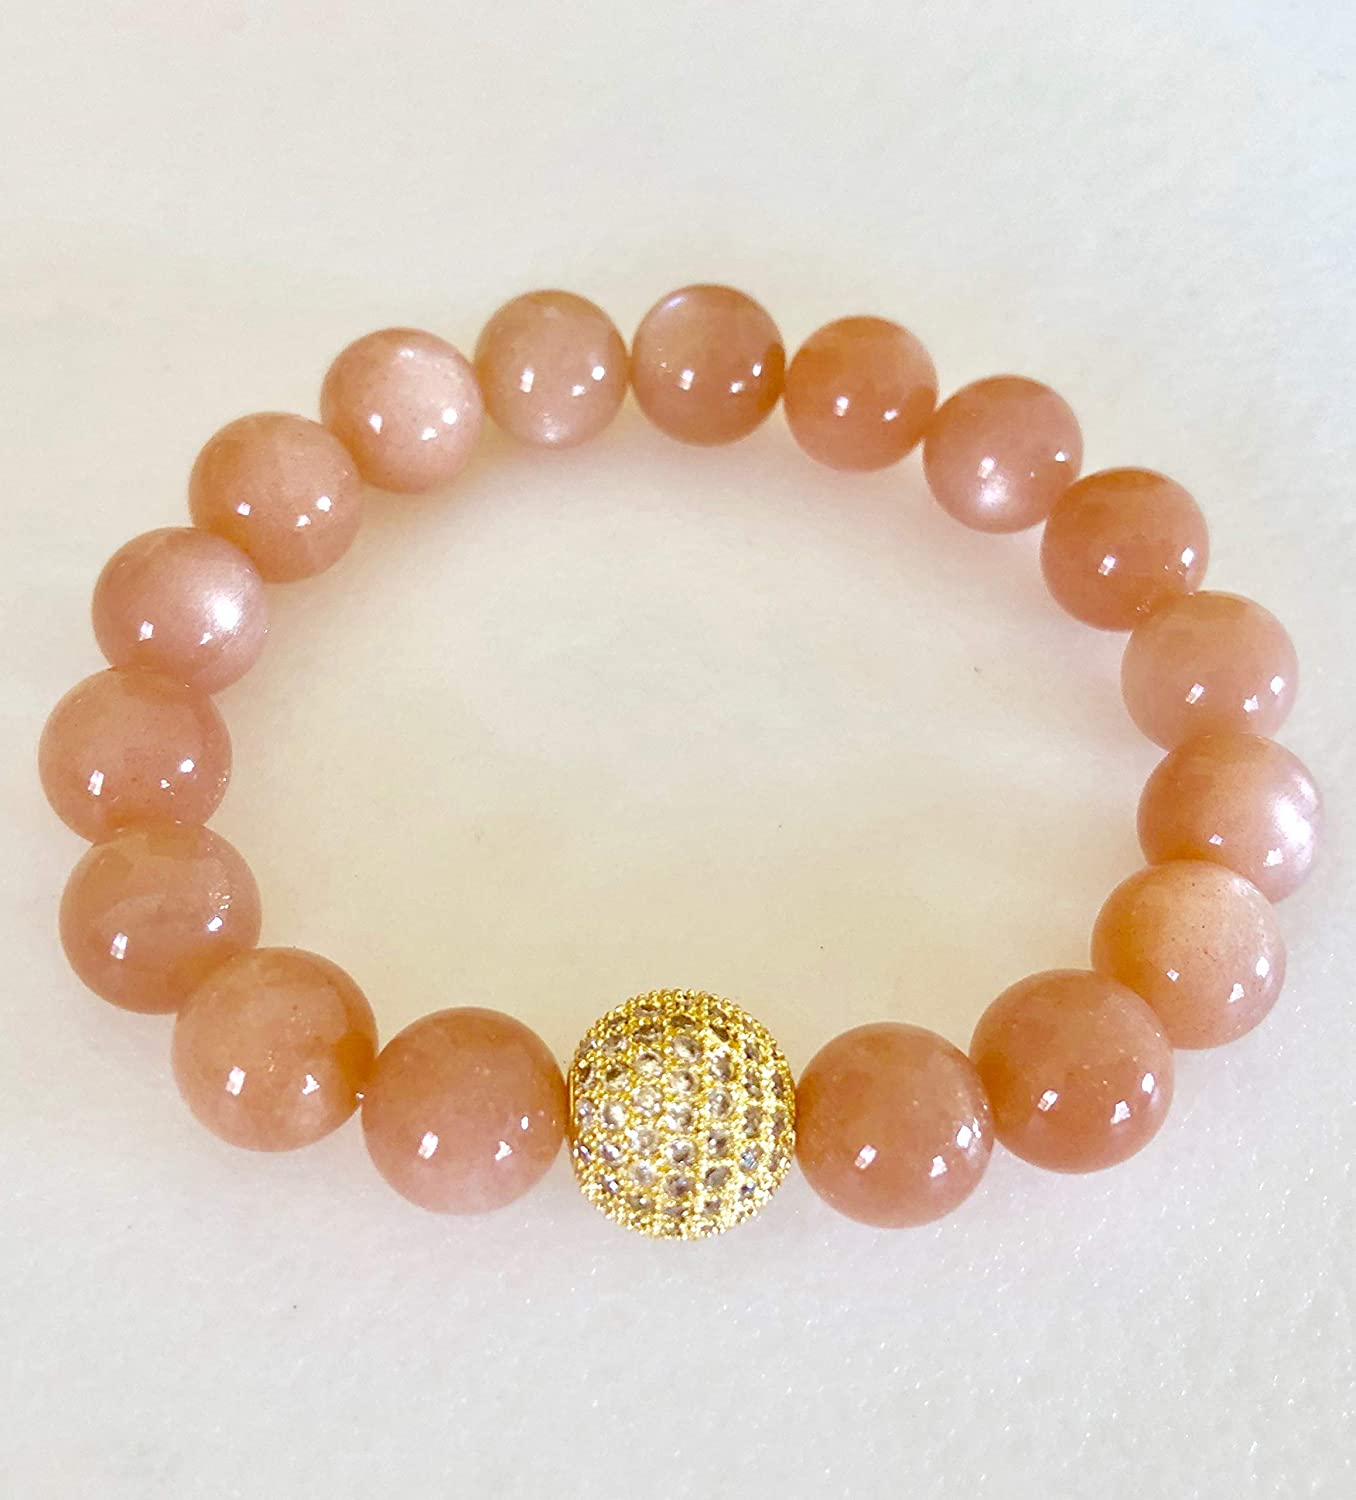 Peach Moonstone Bracelet Stretch Bracelet. Boho Gold Micro Pave Cubic Zirconia Bead Healing Gemstone Natural Moonstone June Birthstone Stacking